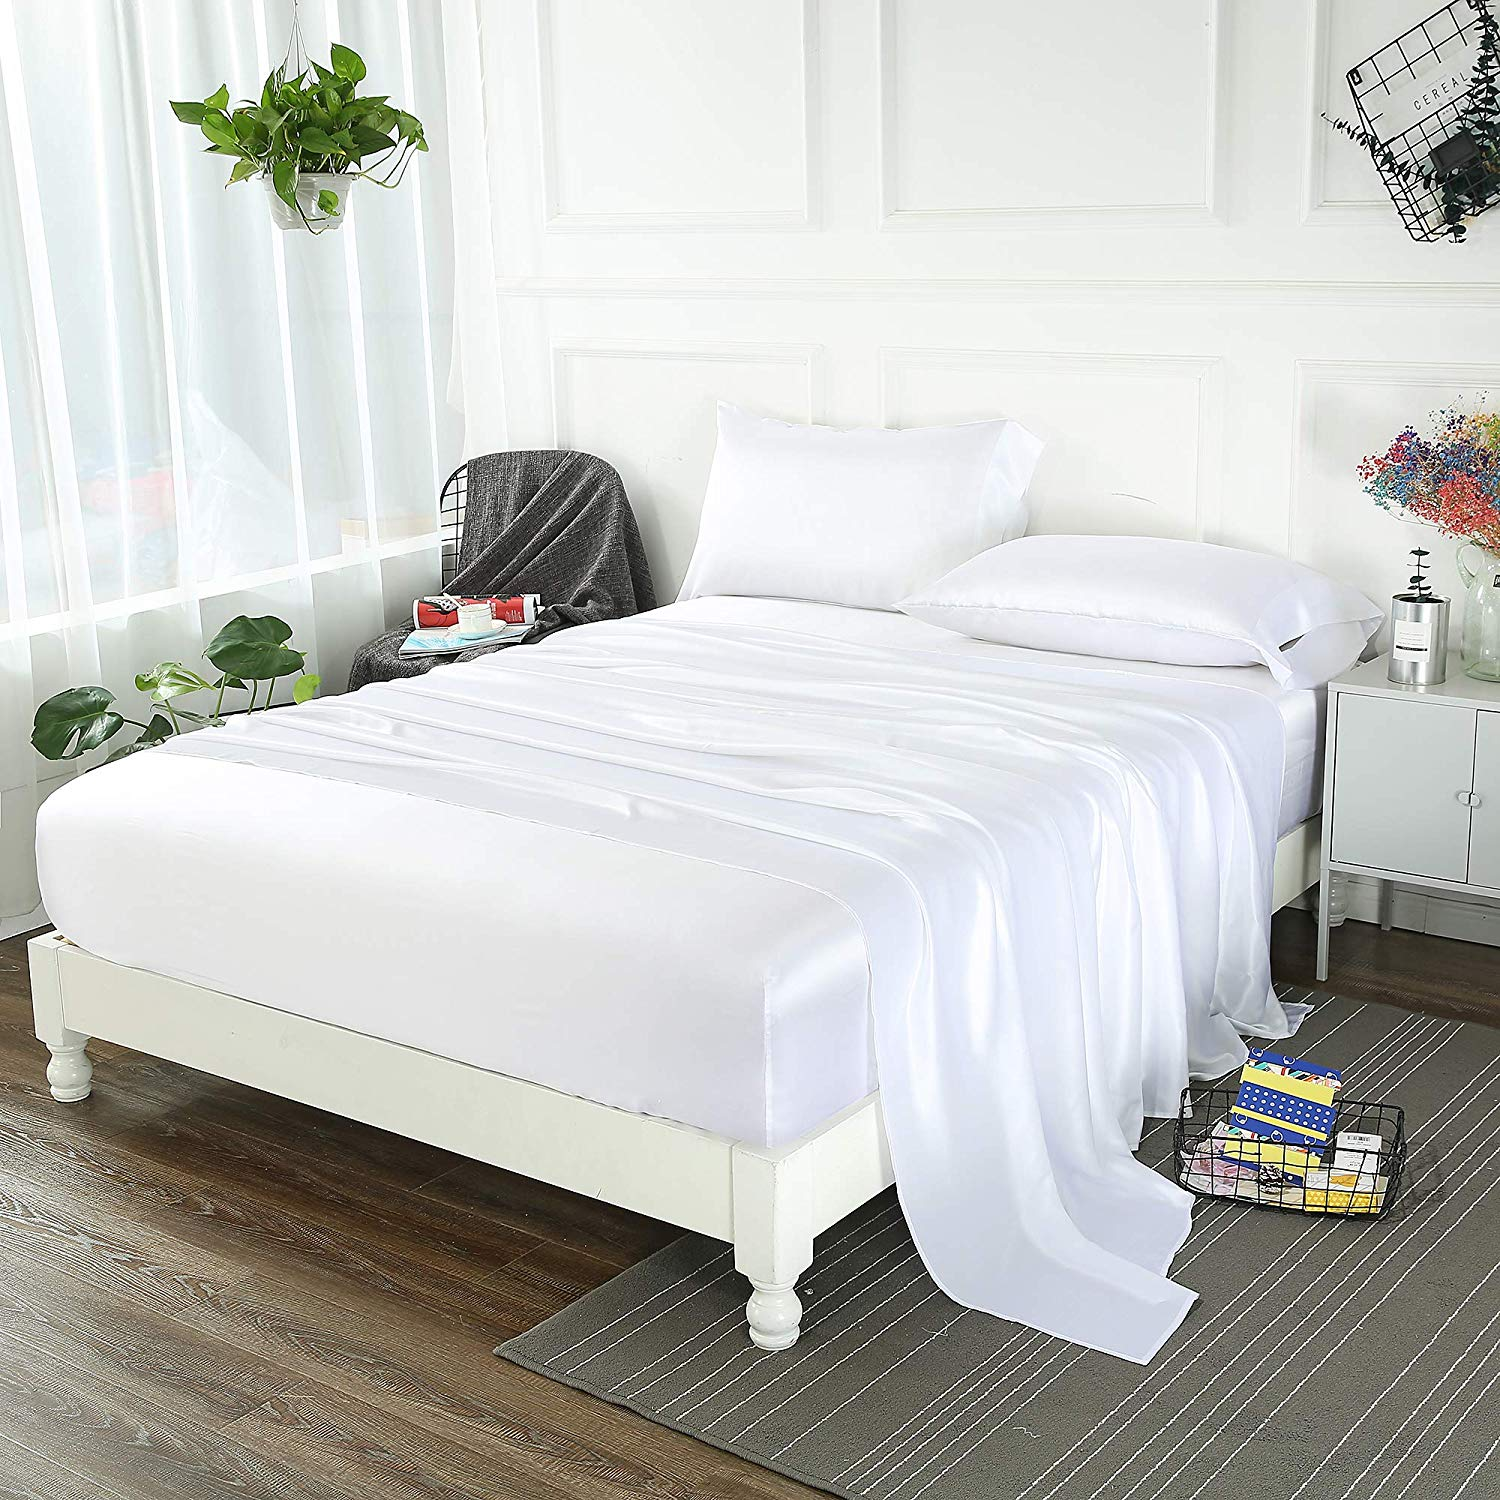 LilySilk 19 Momme Pure Silk Sheet Set - High Thread Count Sheets